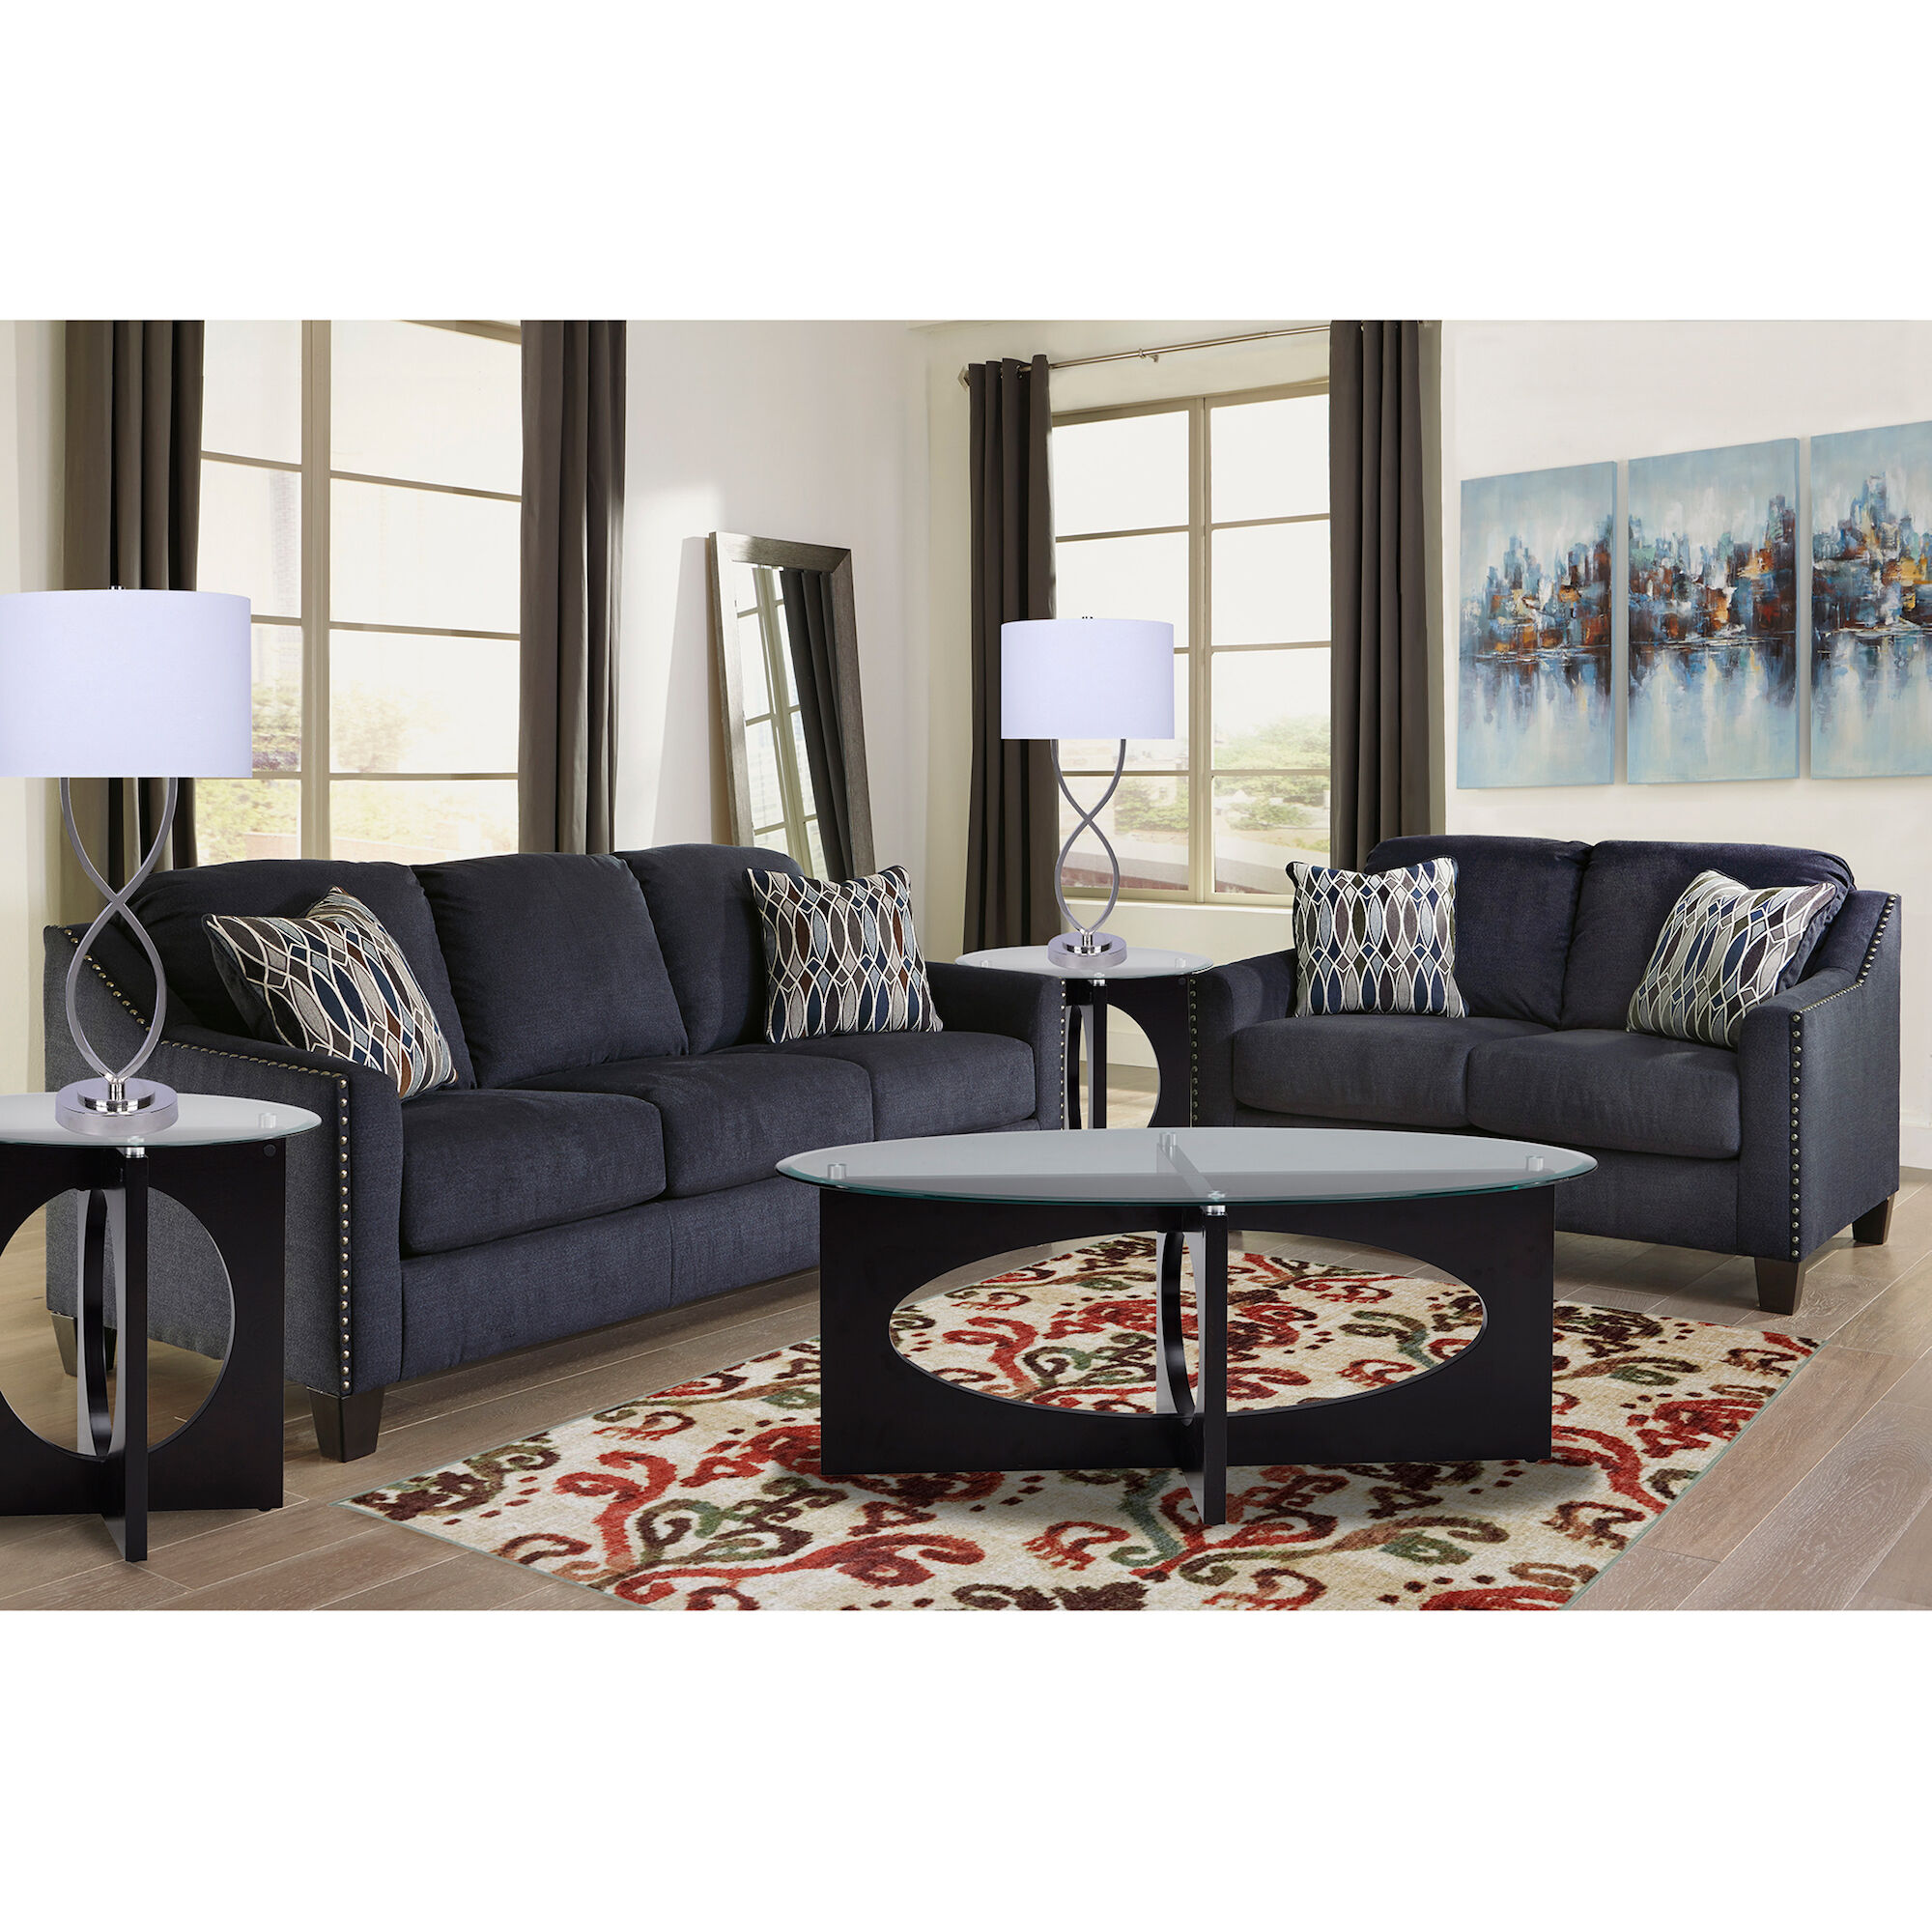 2-Piece Creeal Heights Living Room Collection